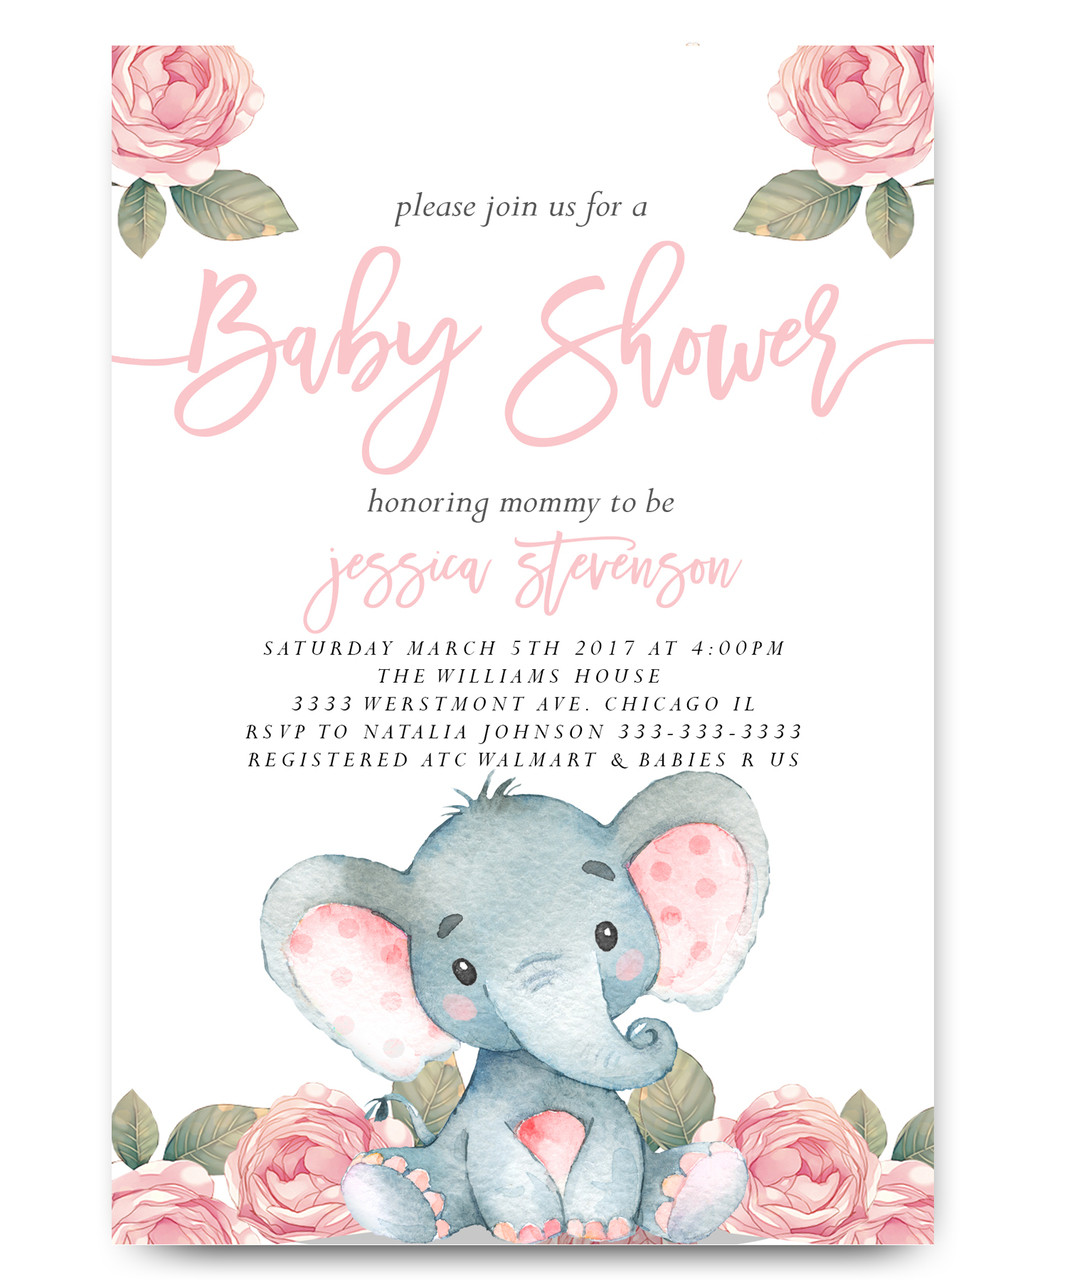 Elephant baby shower invitation, watercolor flowers